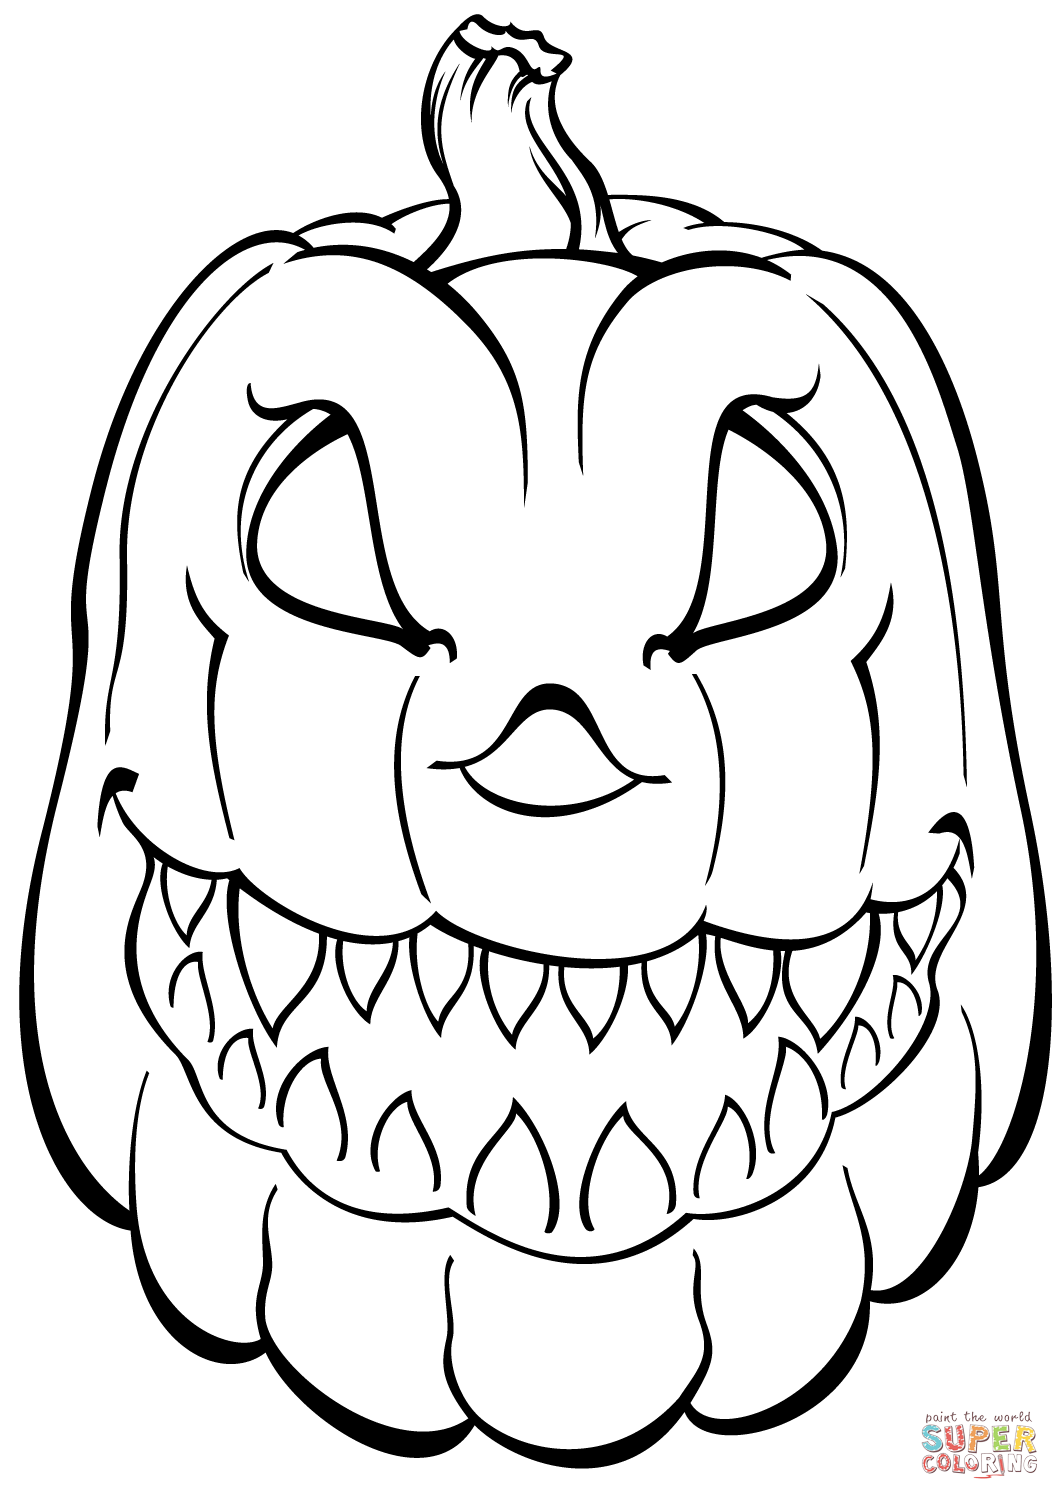 halloween pictures to color pumpkin coloring pages halloween coloring pages fall coloring halloween pumpkin to pictures color